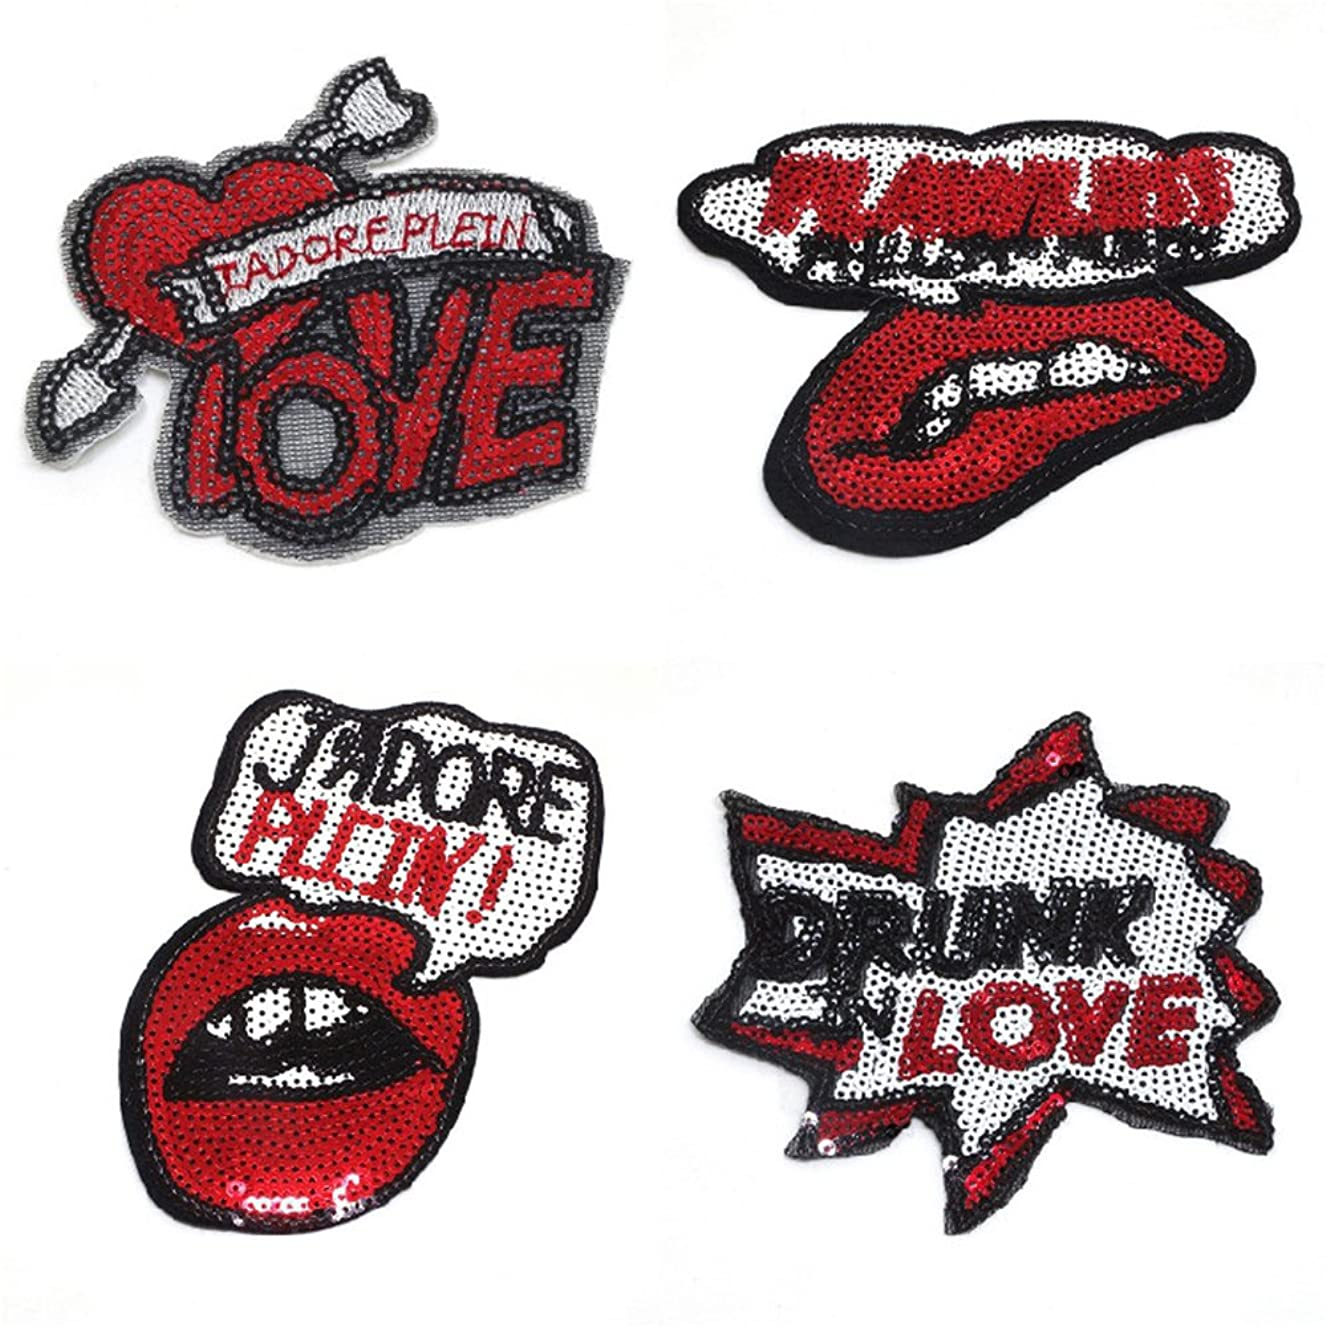 Riverbyland Valentine's Day Sequin Iron On Patches Bling Punk Pack of 4